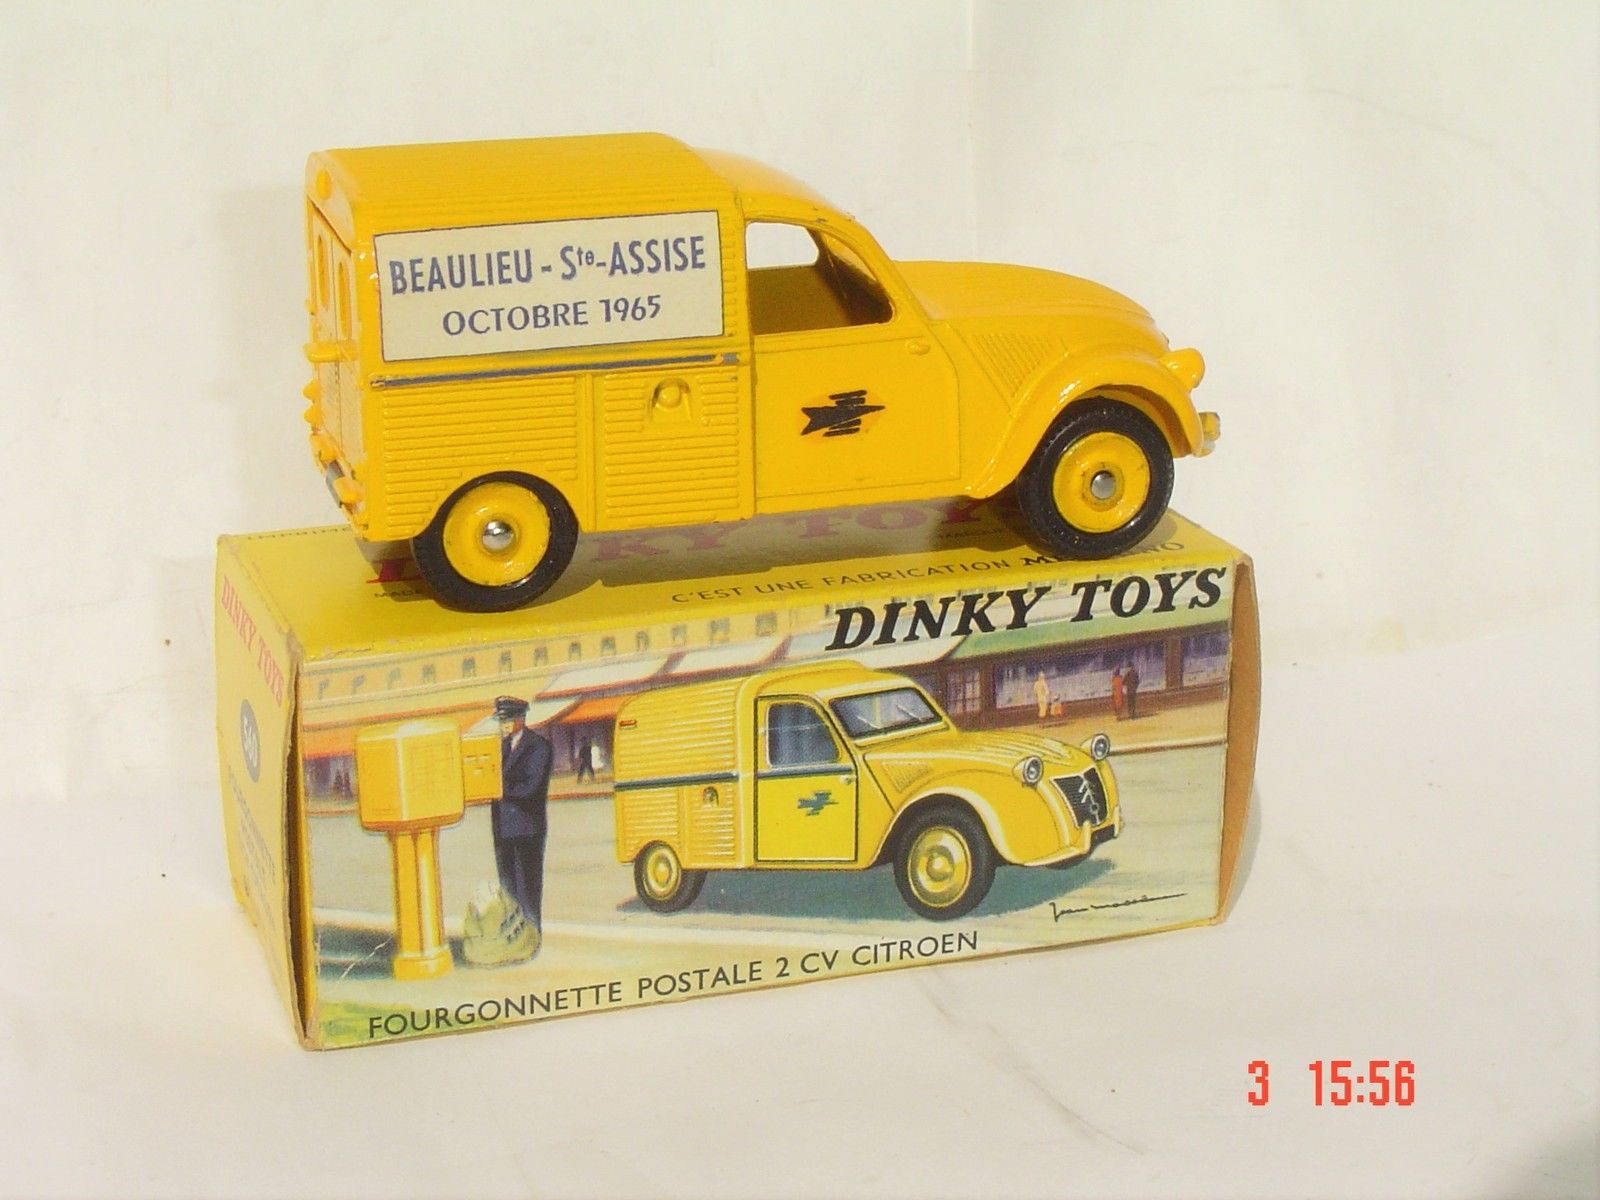 Dinky 2cv Ptt 1965 Code 3 Vendu 725 En Octobre 2016 Corgi Toys Toy Car Miniature Cars